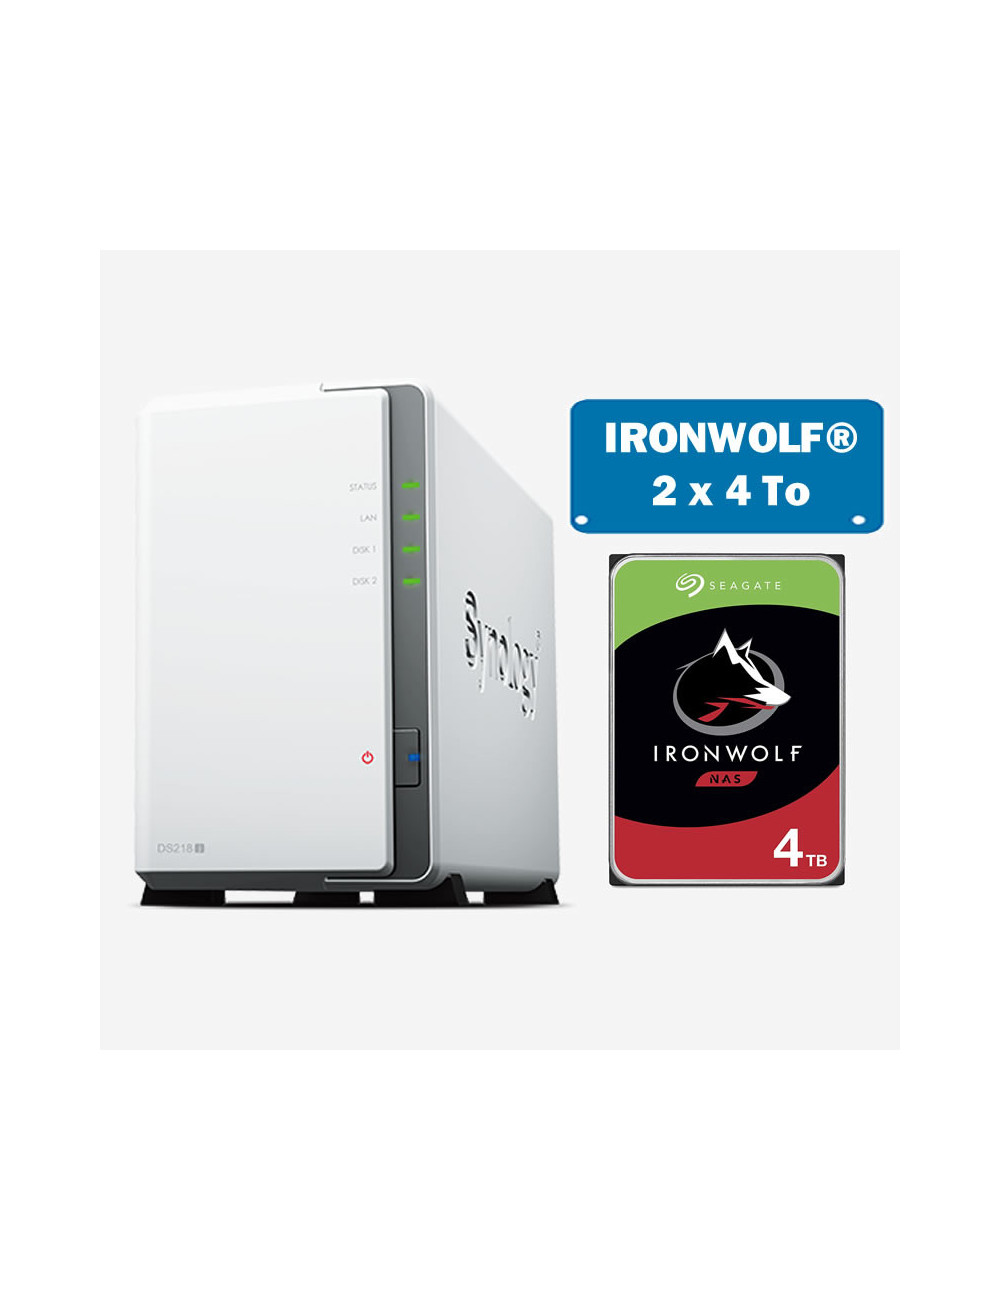 Synology DS218J Serveur NAS IRONWOLF 8To (2x4To)